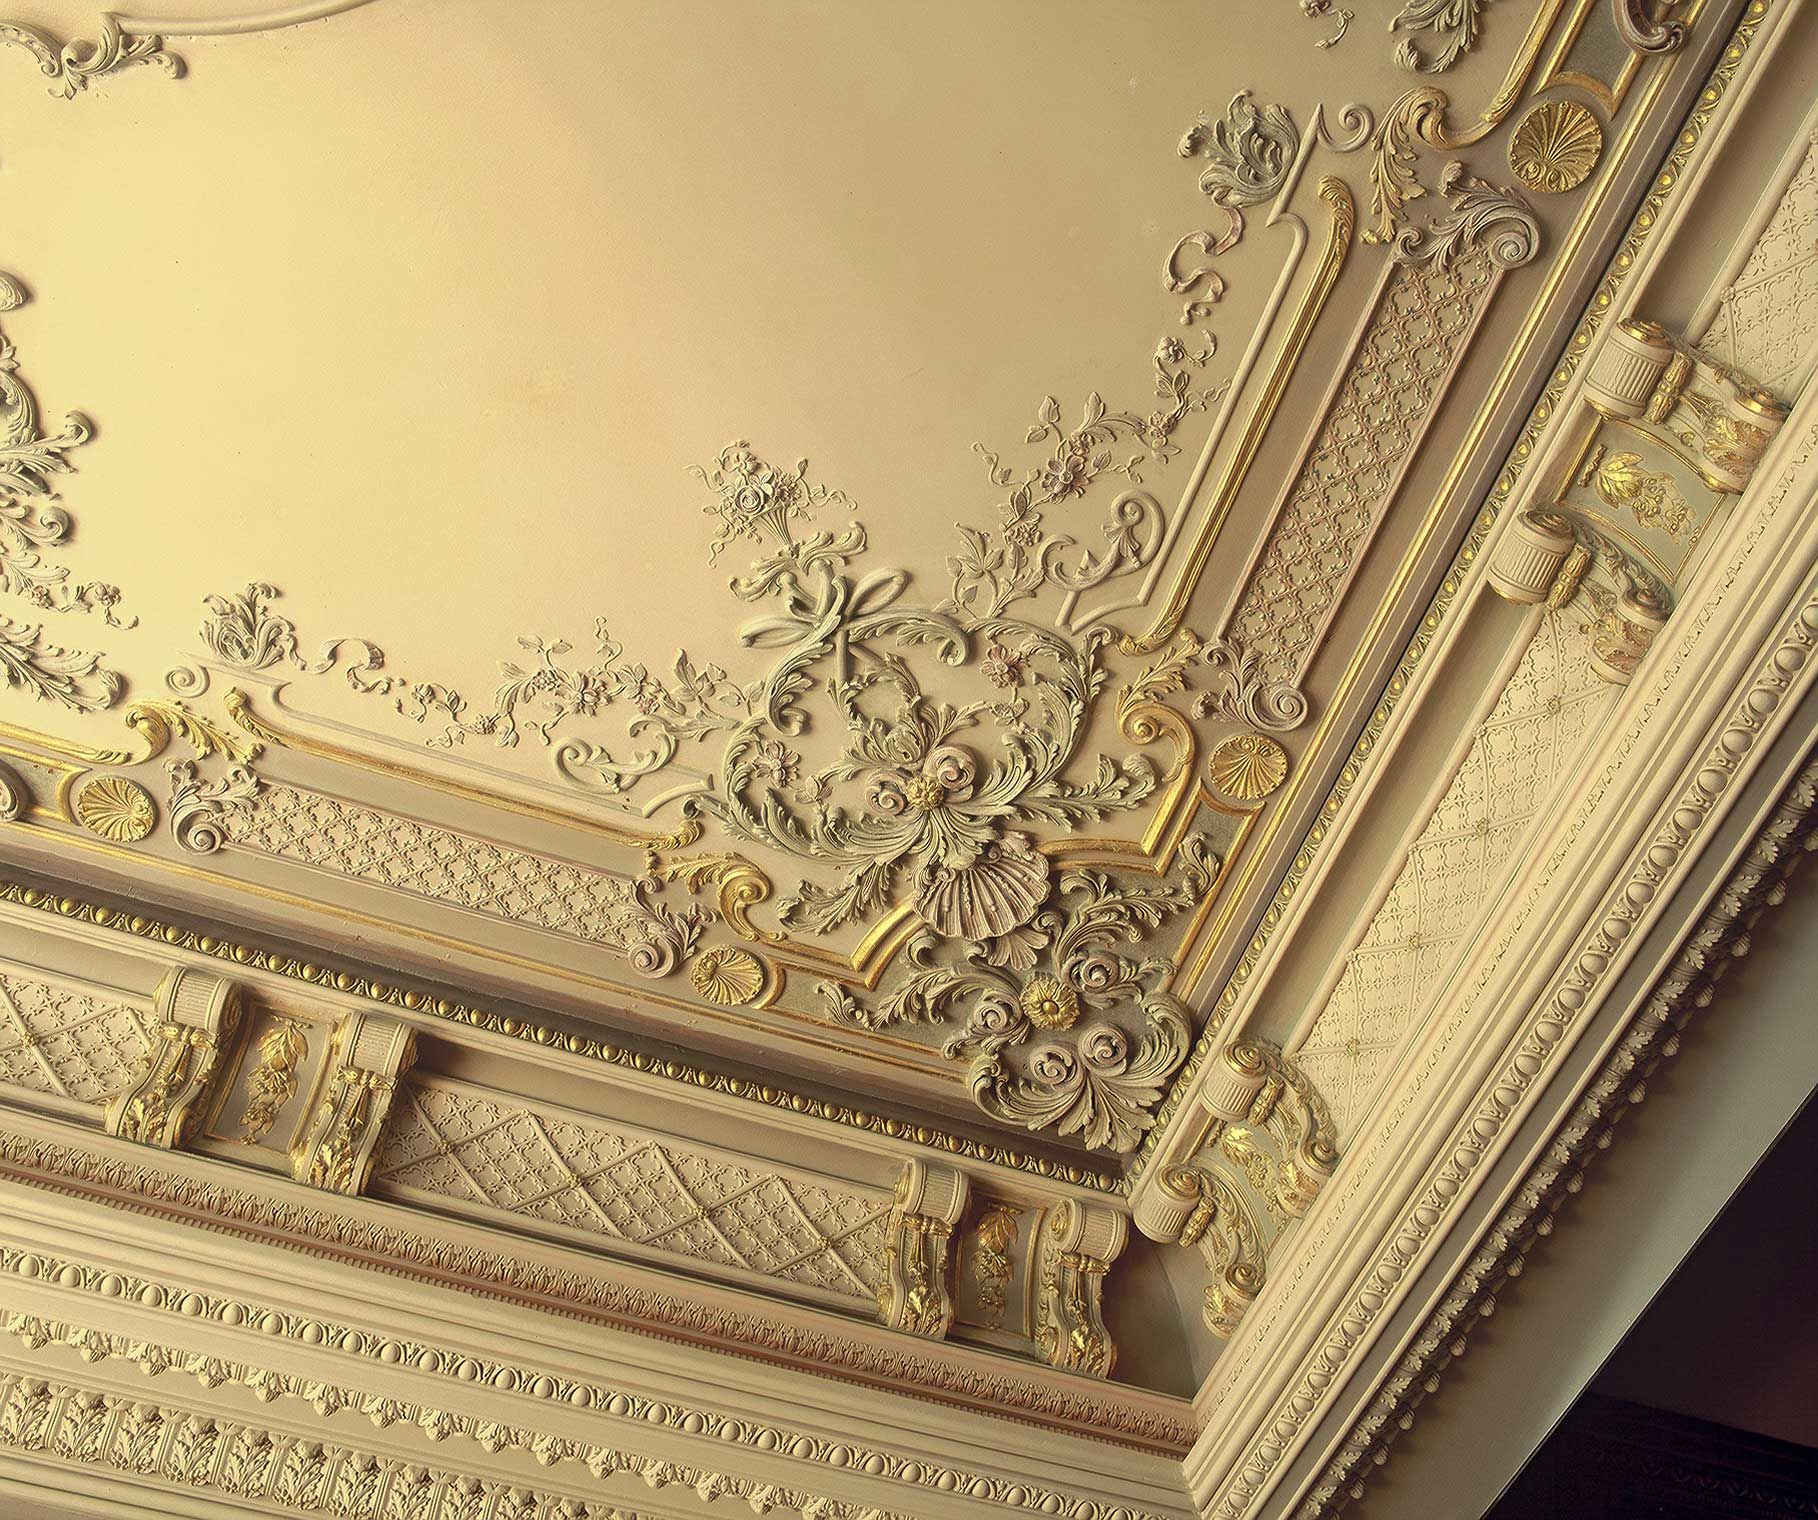 JP Weaver Ceiling | interiors | Pinterest | Ceilings, Moldings and ...